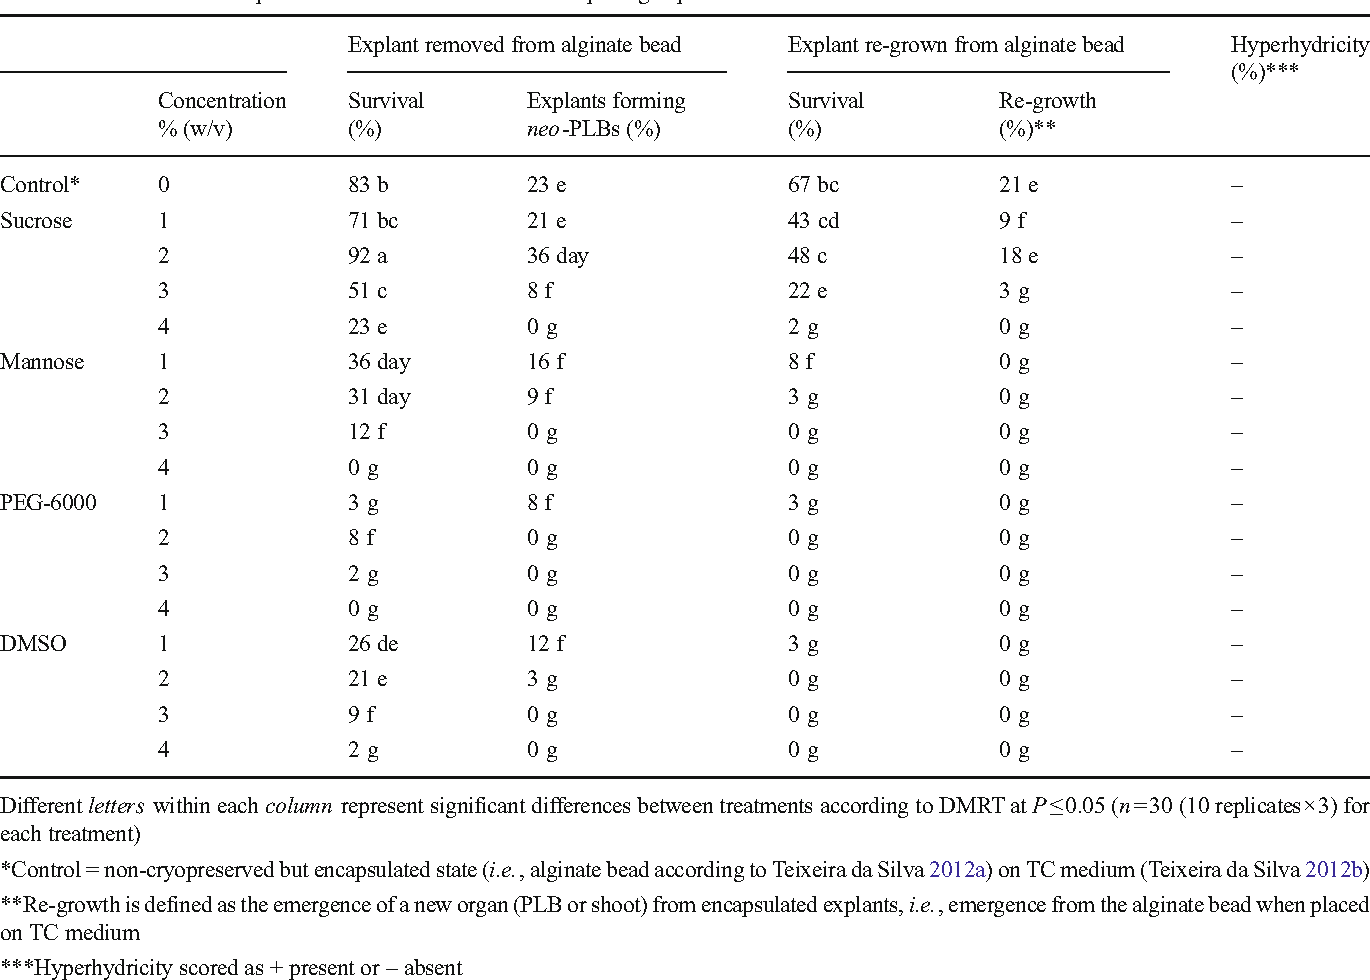 Table 2. Effect of osmotic pre-treatments assessed 30 d after replating explants